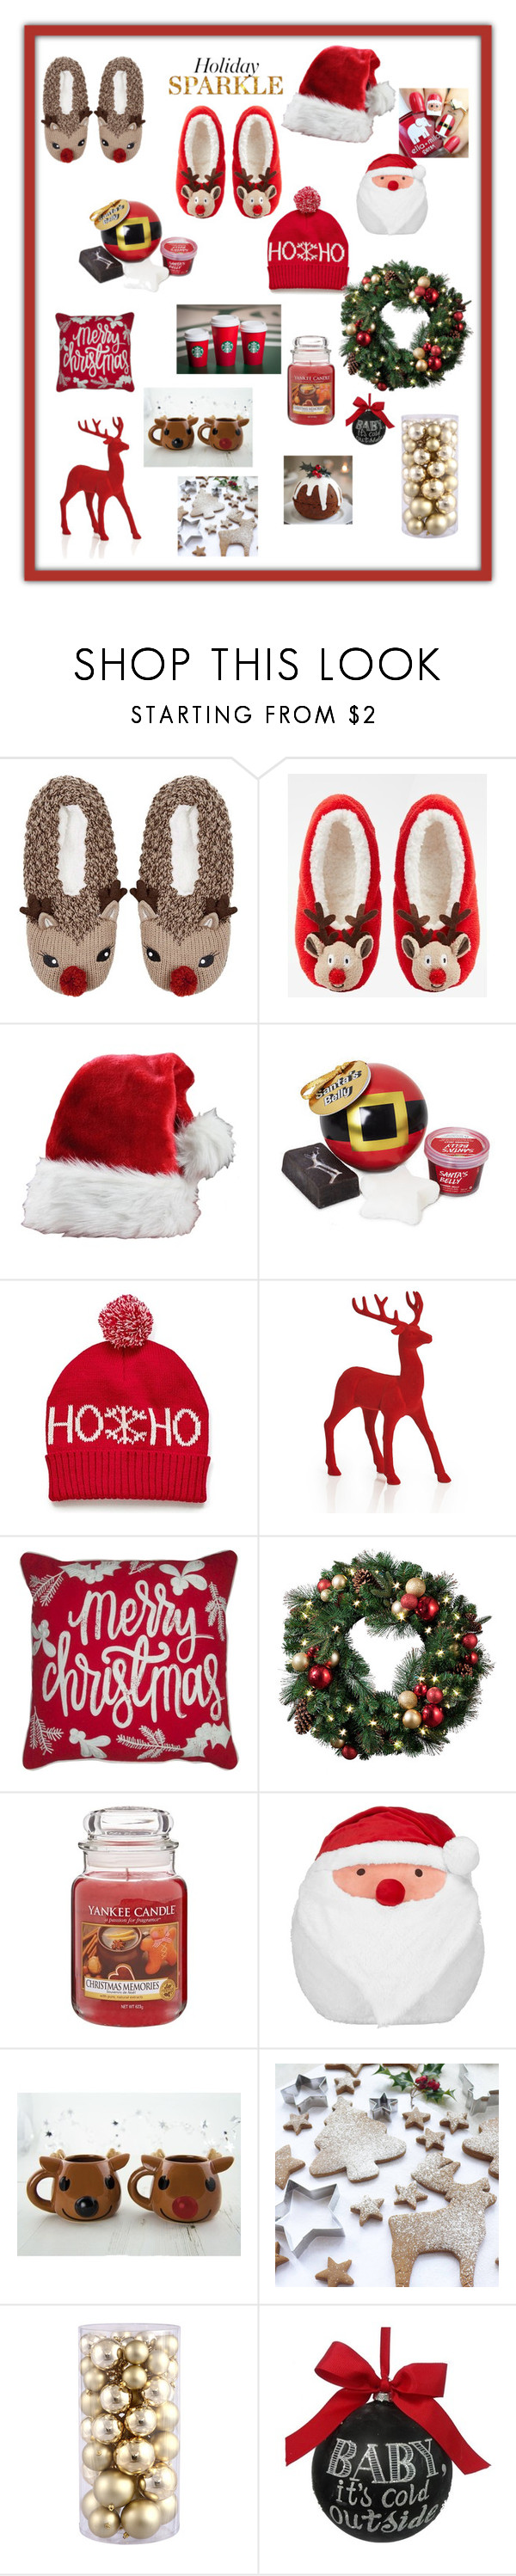 """Christmas essential"" by laurahyuna ❤ liked on Polyvore featuring interior, interiors, interior design, home, home decor, interior decorating, Topshop, ASOS, Yankee Candle and John Lewis"